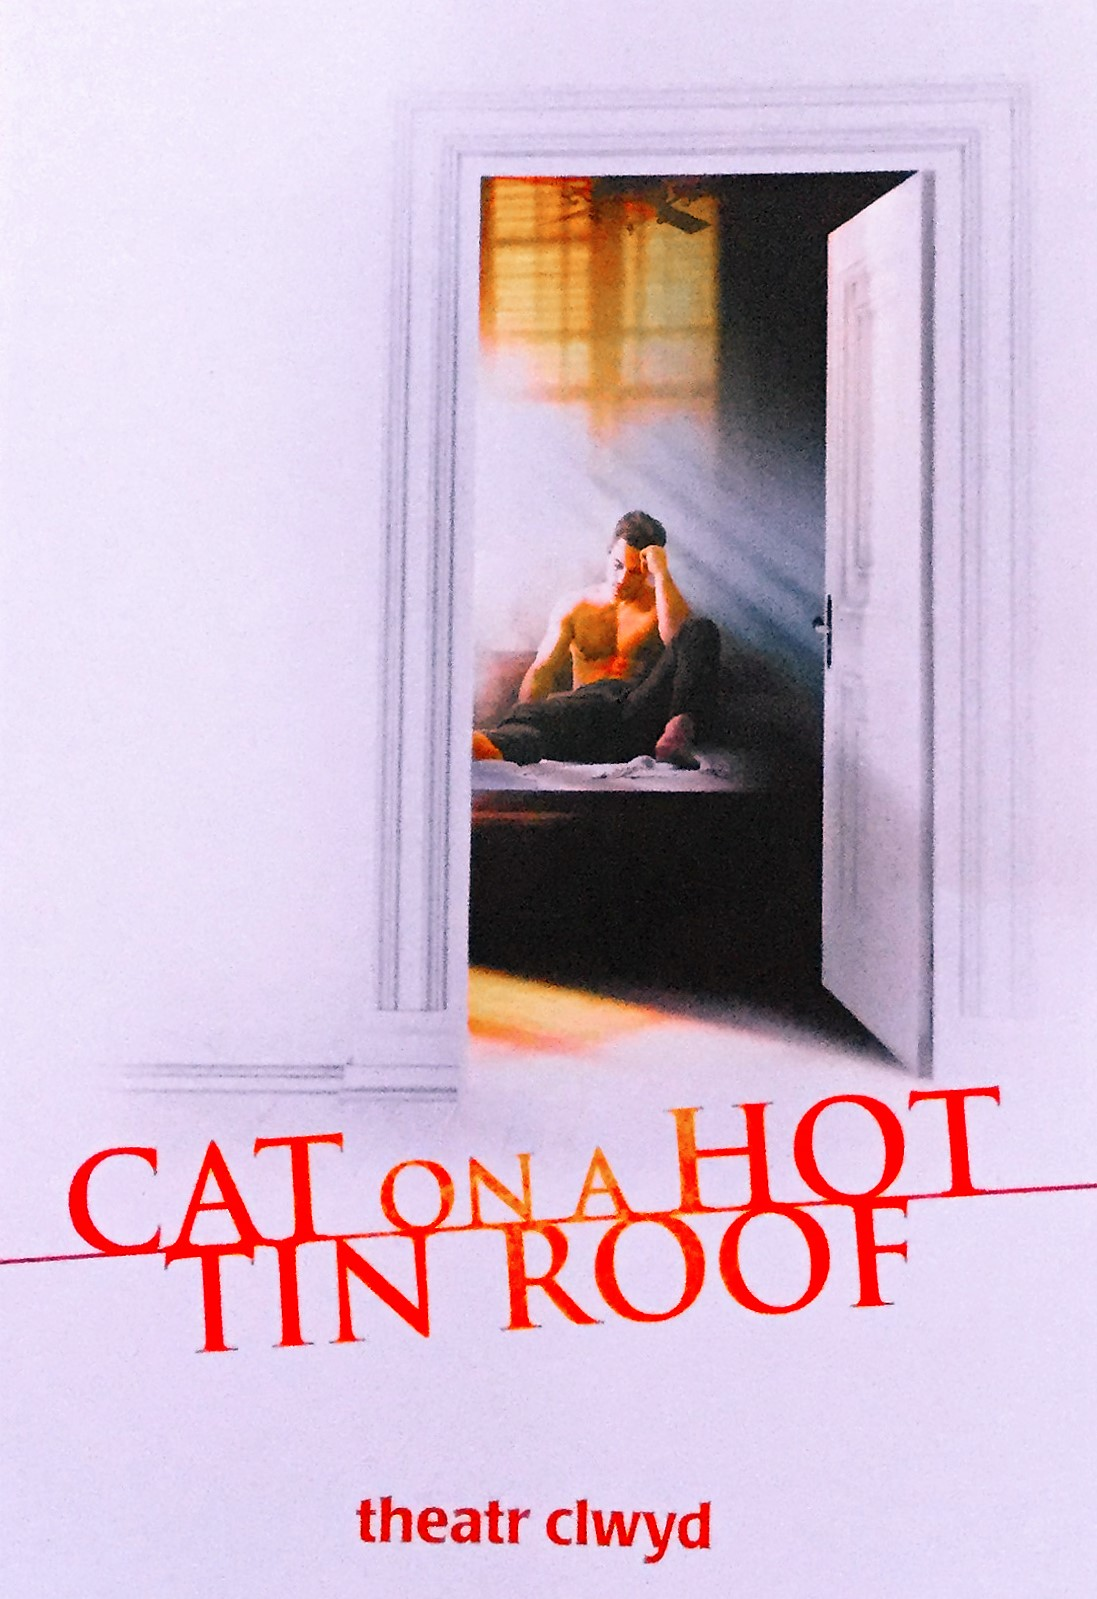 an analysis of the characters in the play the cat on a hot tin roof by tennessee williams Sienna miller and jack o'connell star in tennessee williams' searing masterpiece set on a steamy night in performances see cat on a hot tin roof in cinemas nationwide with national theatre live on 22 february 2018  a brilliant, lacerating account of the play unforgettable the independent  miller.